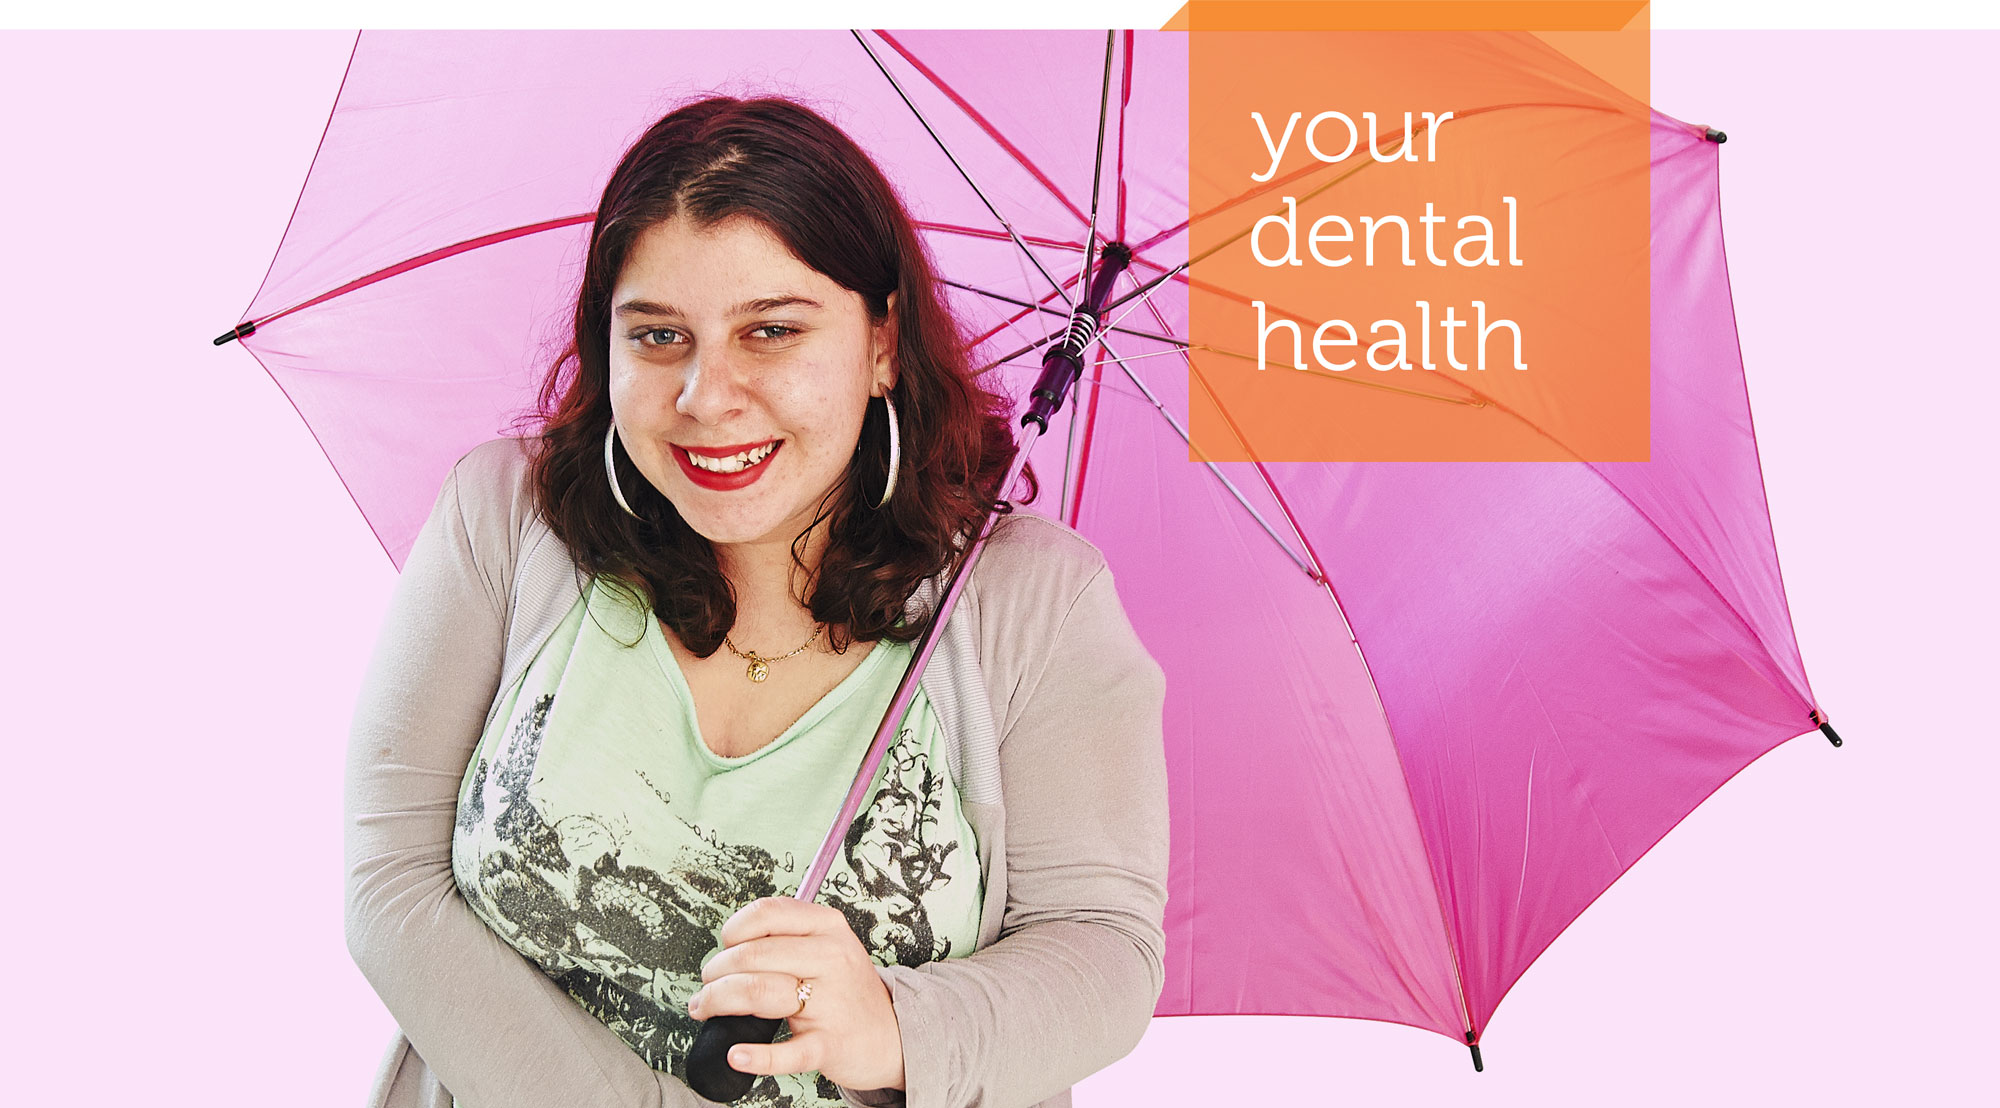 Your Dental Health banner